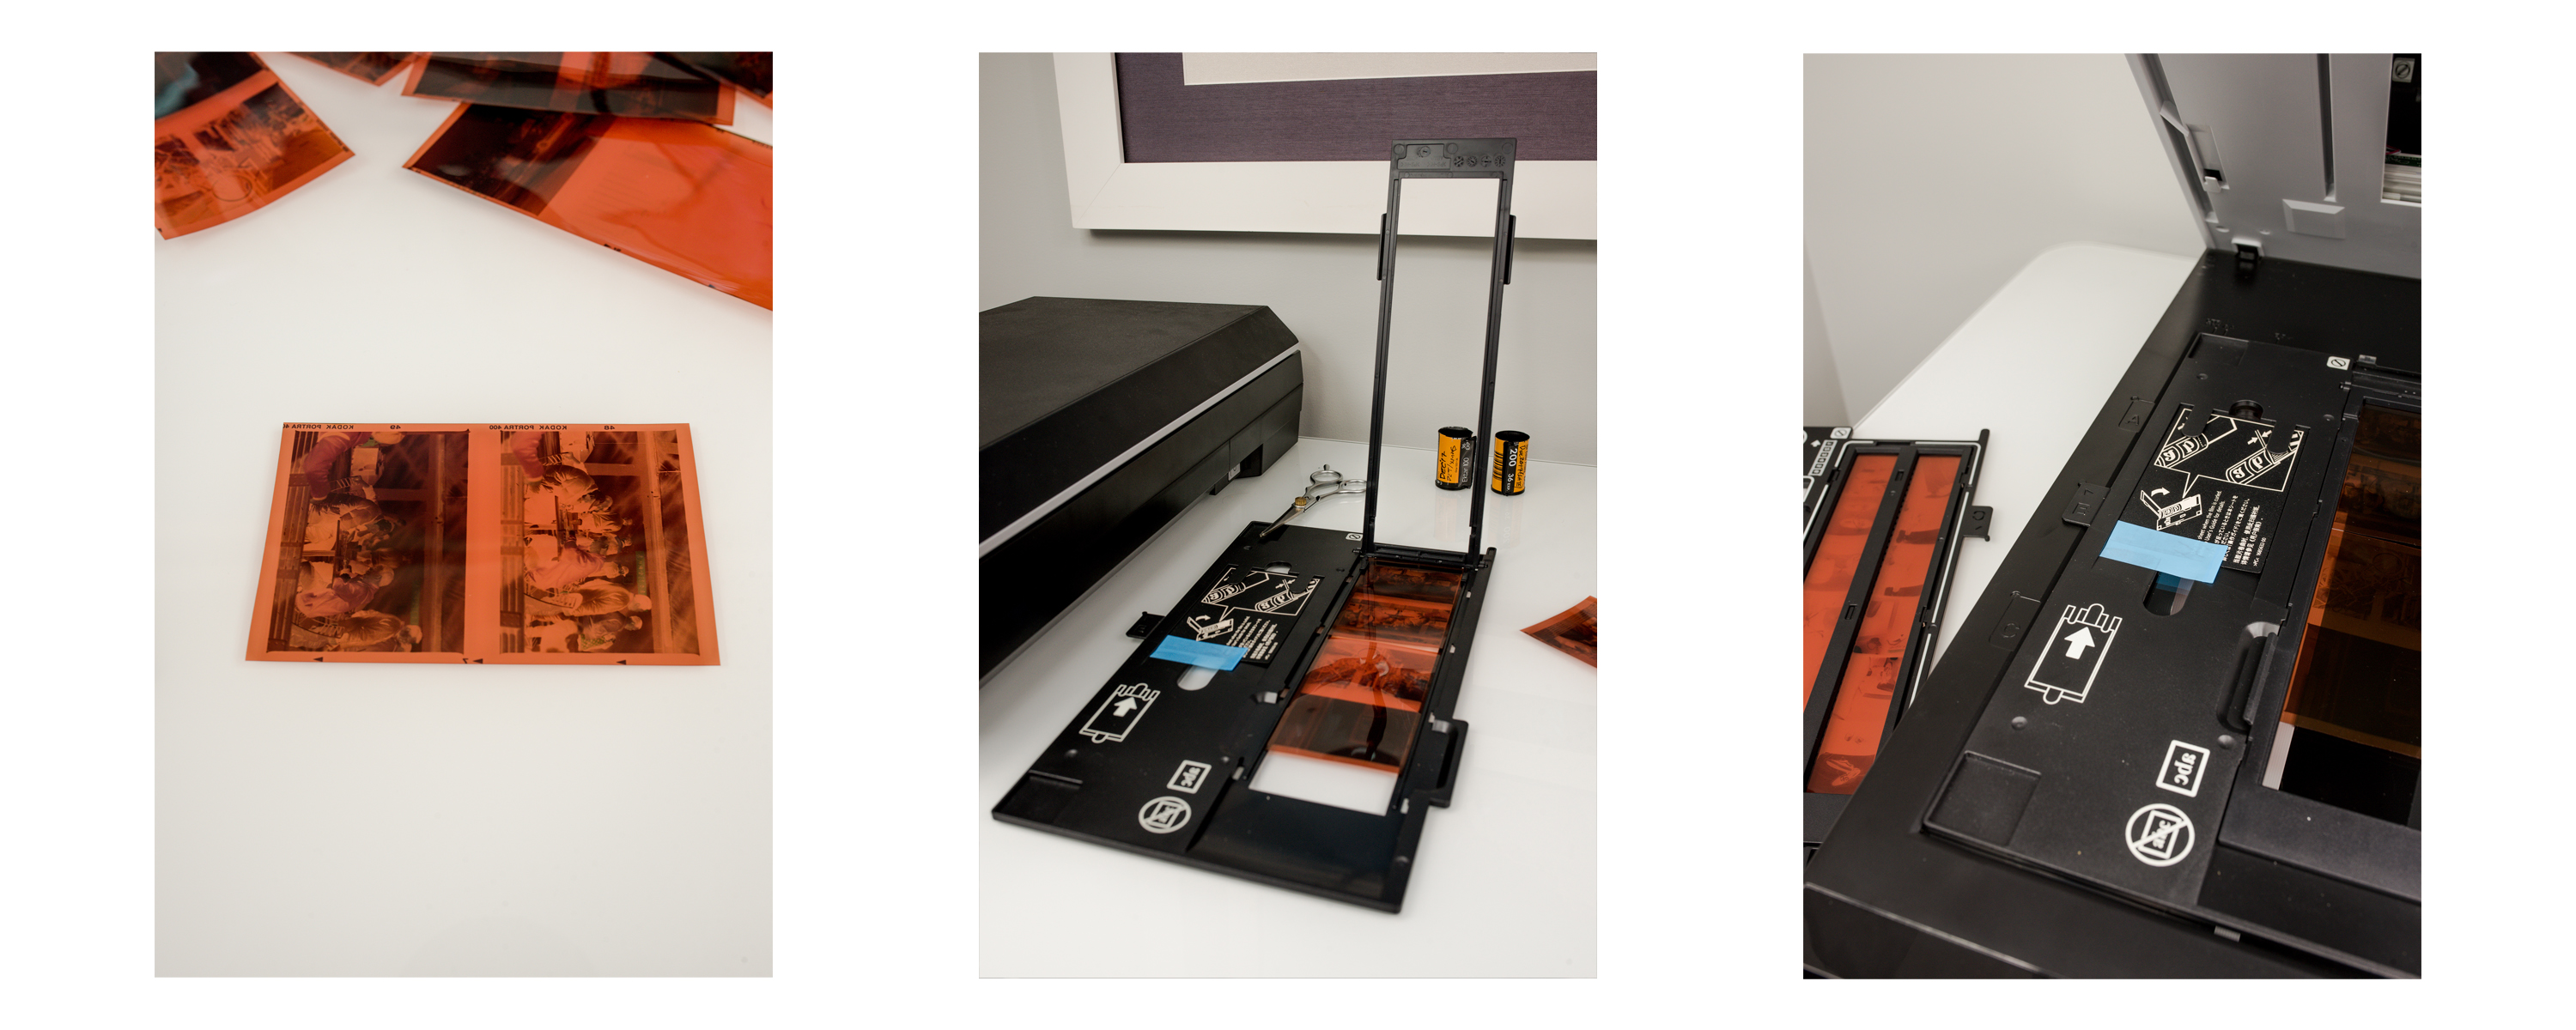 *120mm - Scanning Analog Film with the Epson Perfection v550 Photo Scanner - FilterGrade